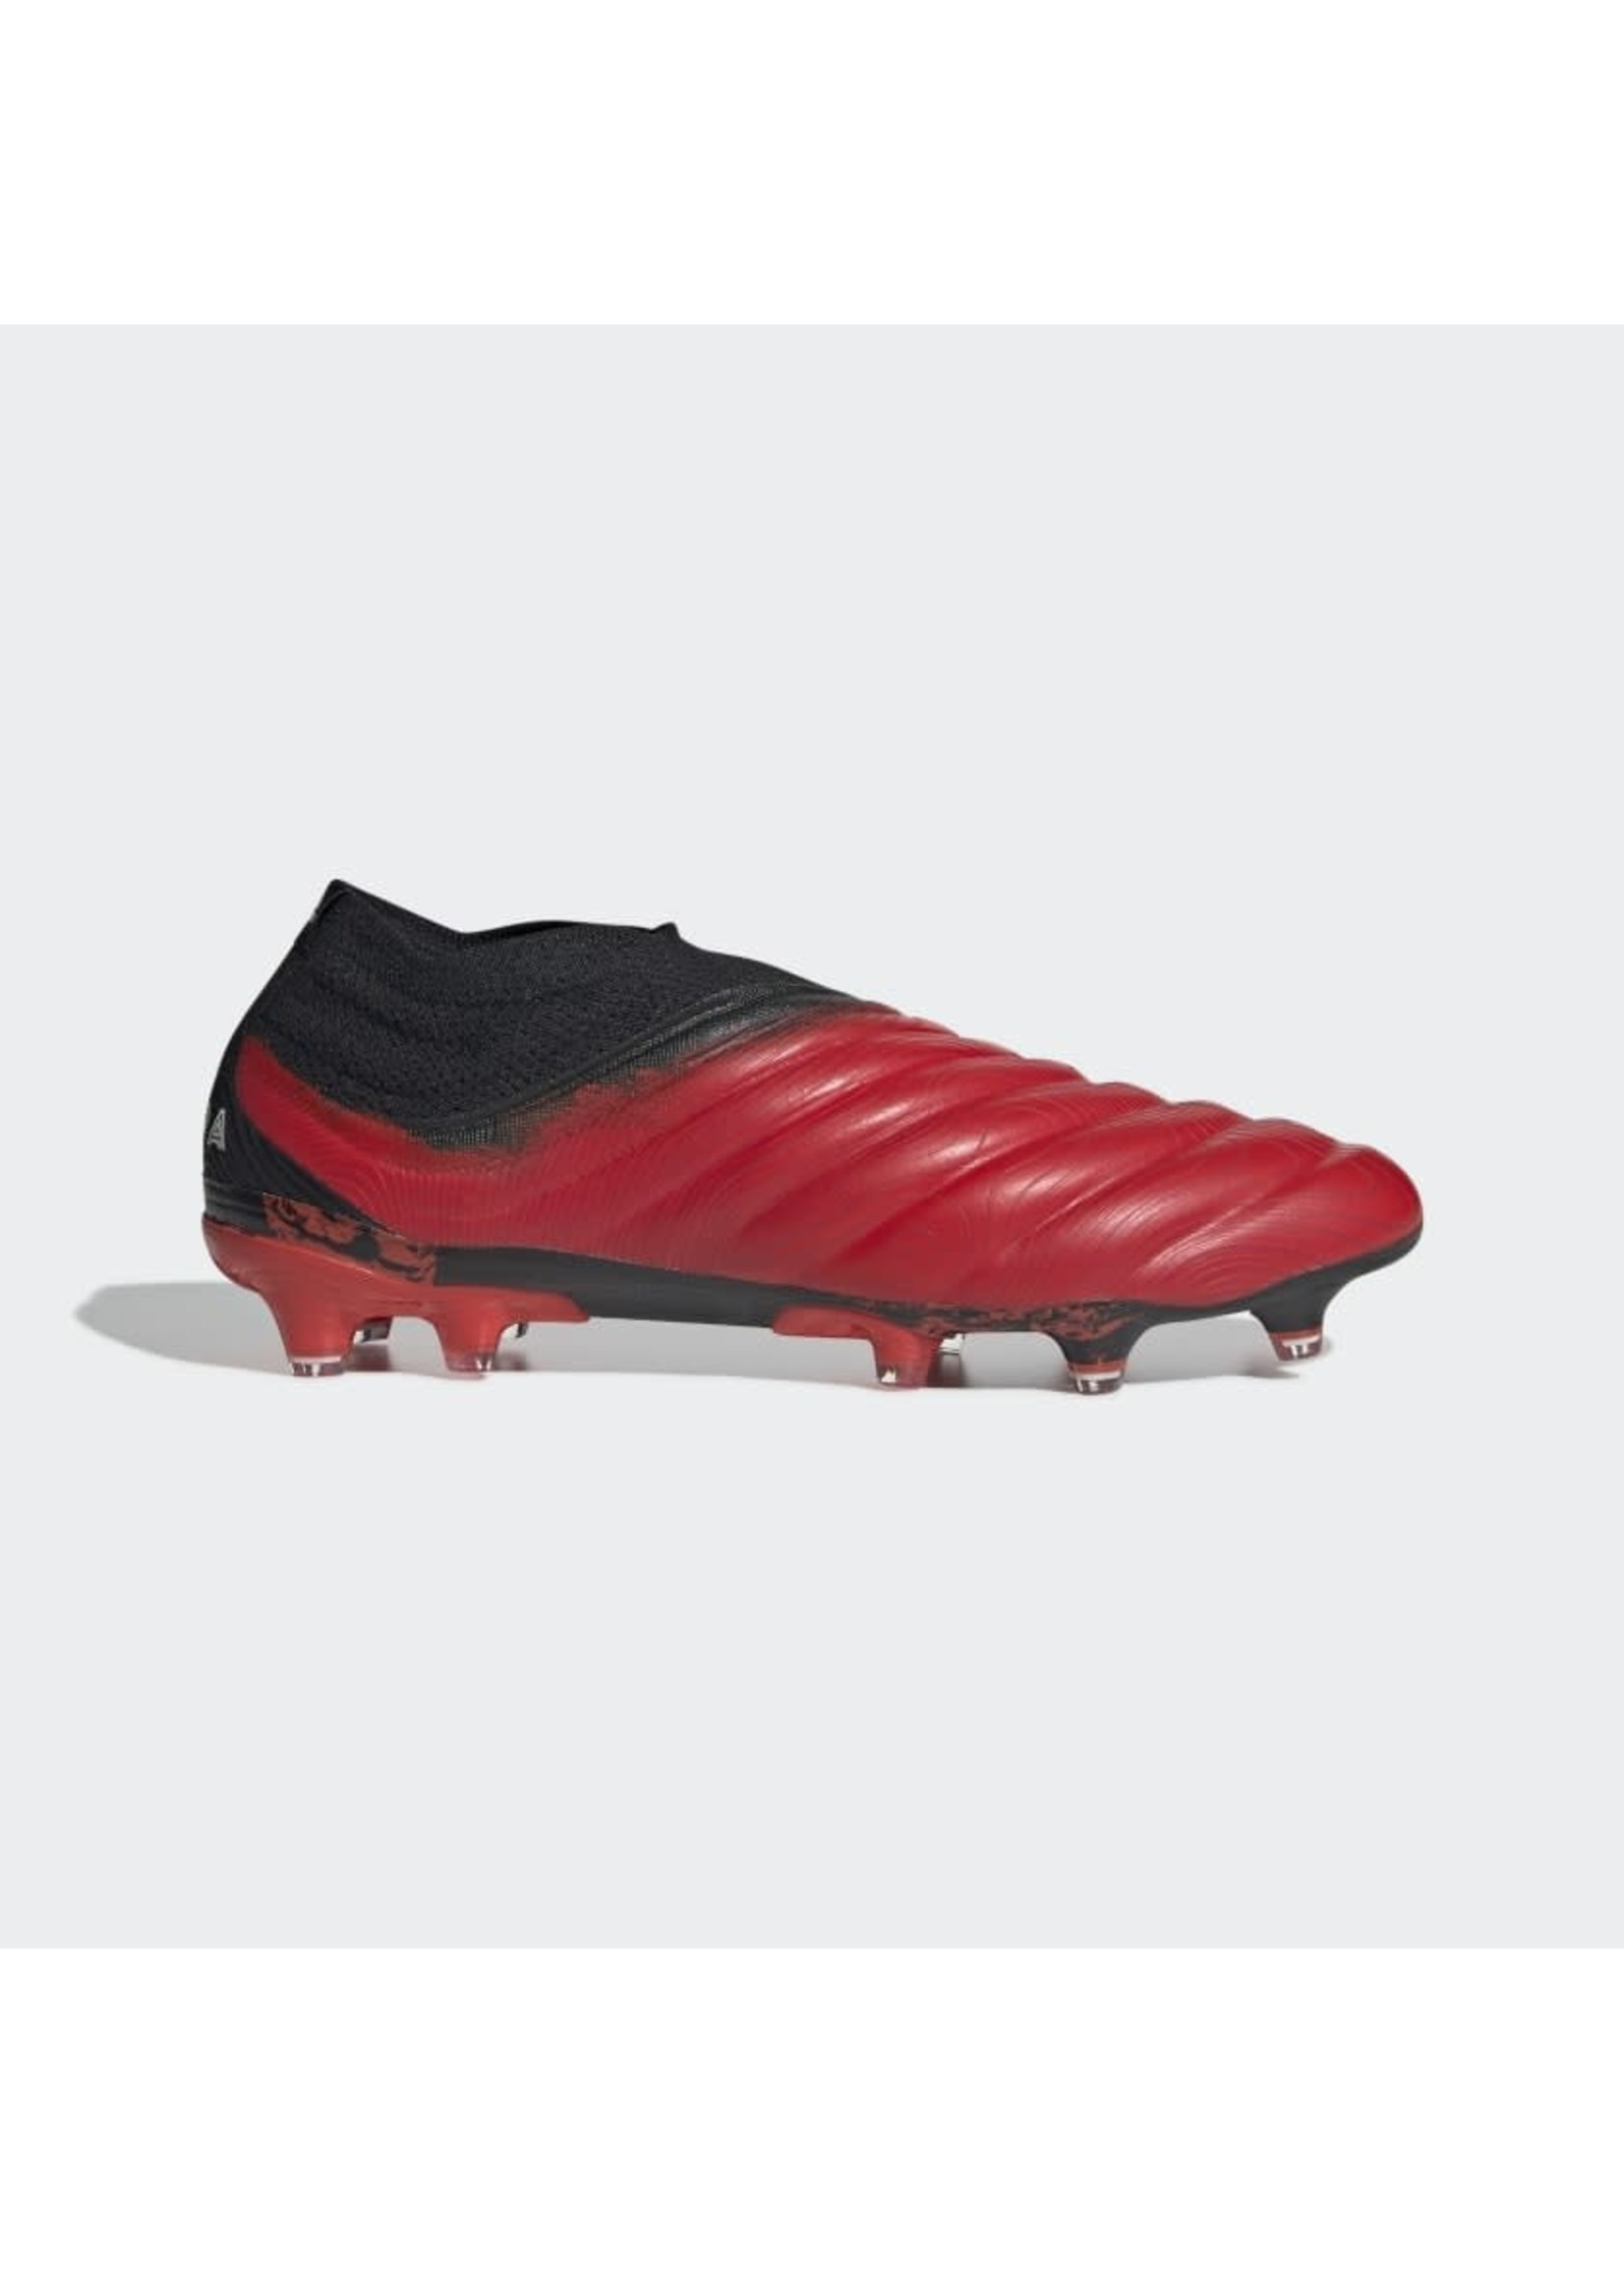 Adidas Copa 20+ FG - Red/Black